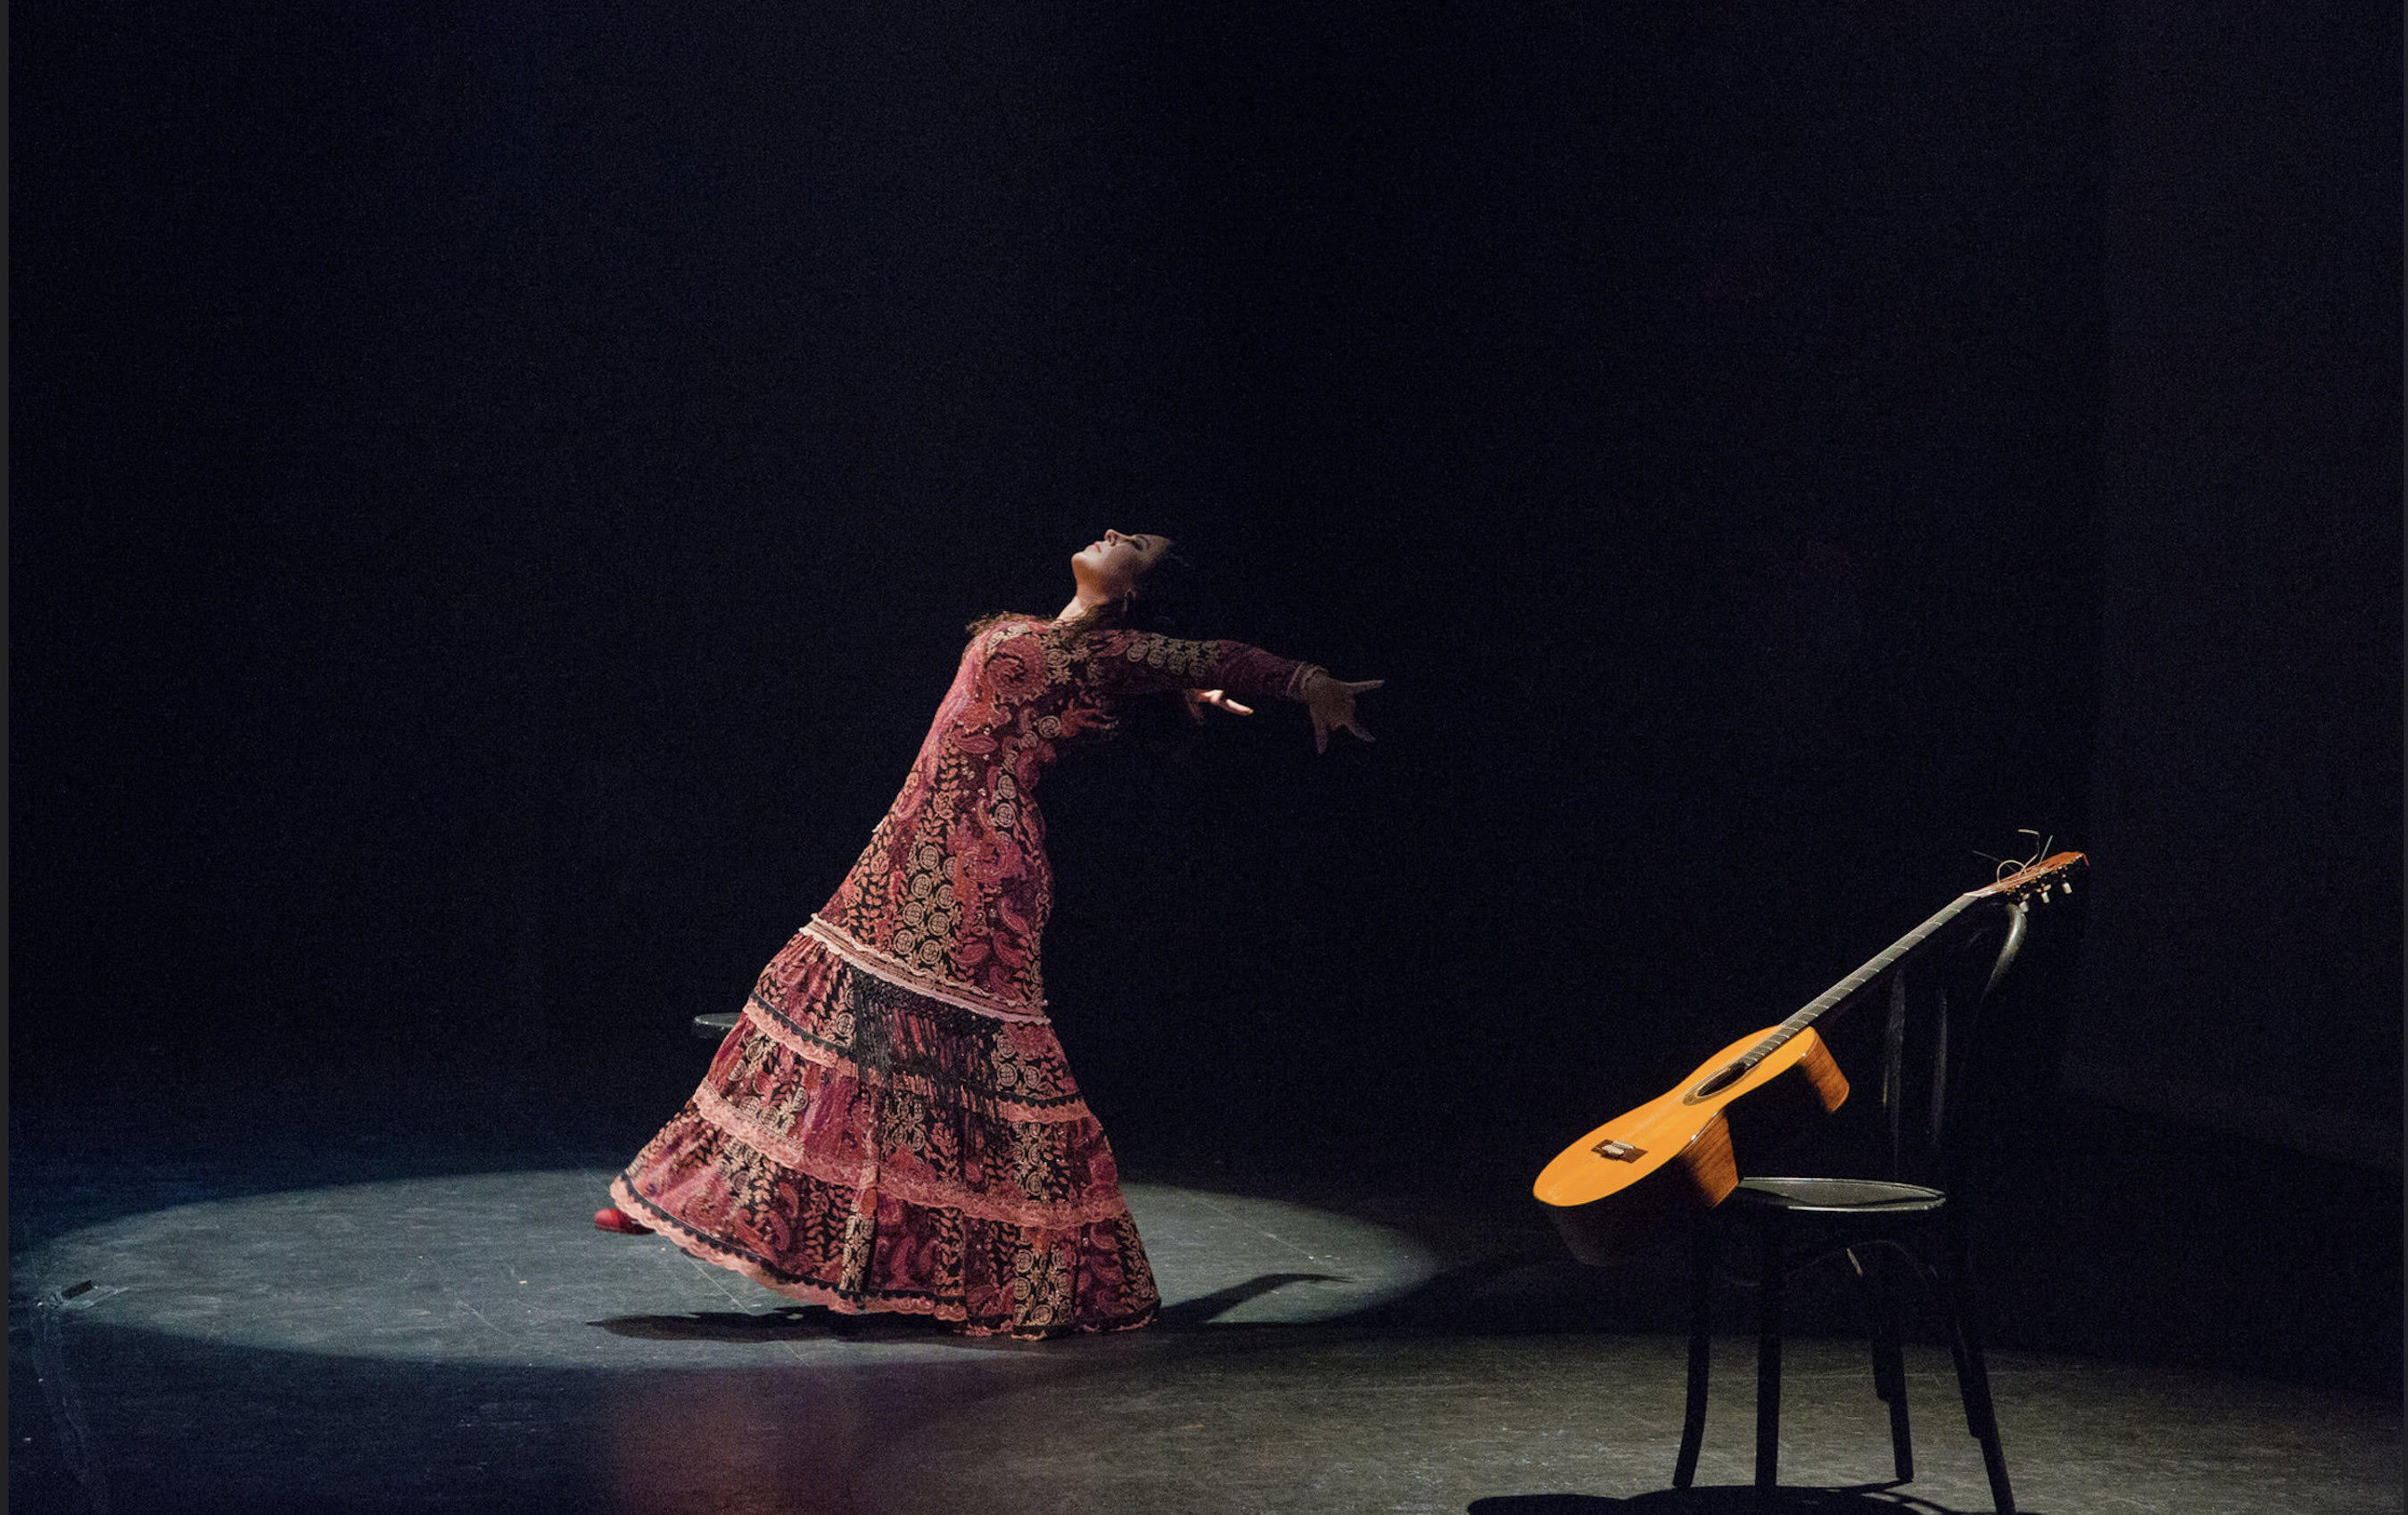 The Roots of Flamenco World Tour 2017 arrives in Singapore for only 2 nights this October - Alvinology